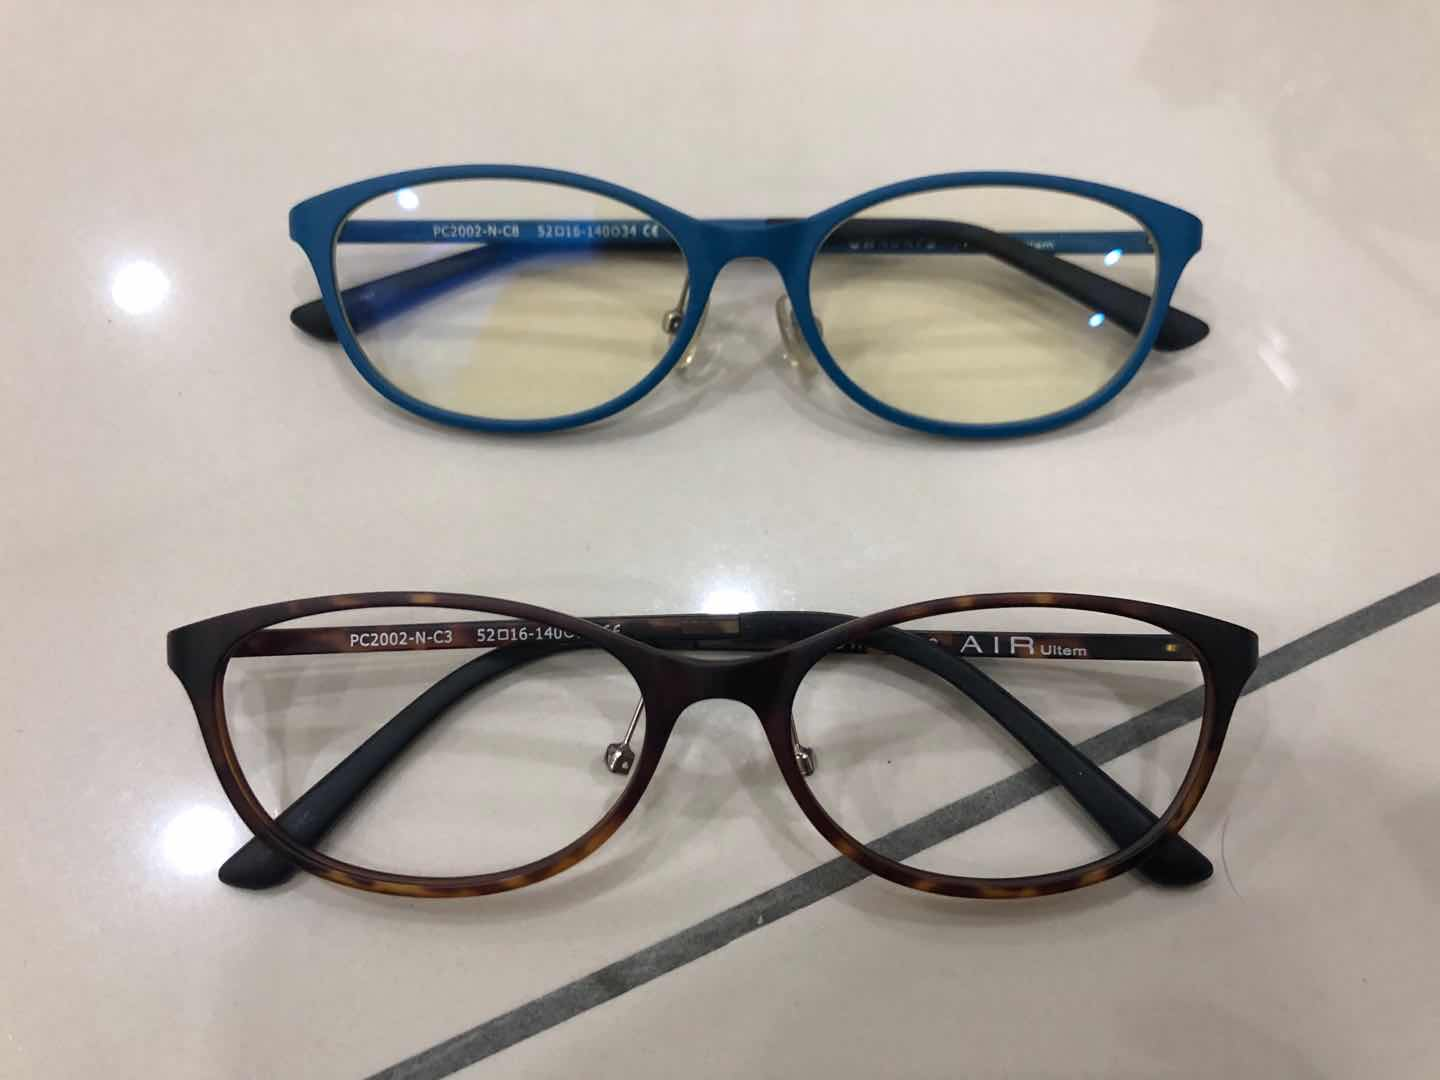 Anti radiation sunglasses Clearance from Glasses shop